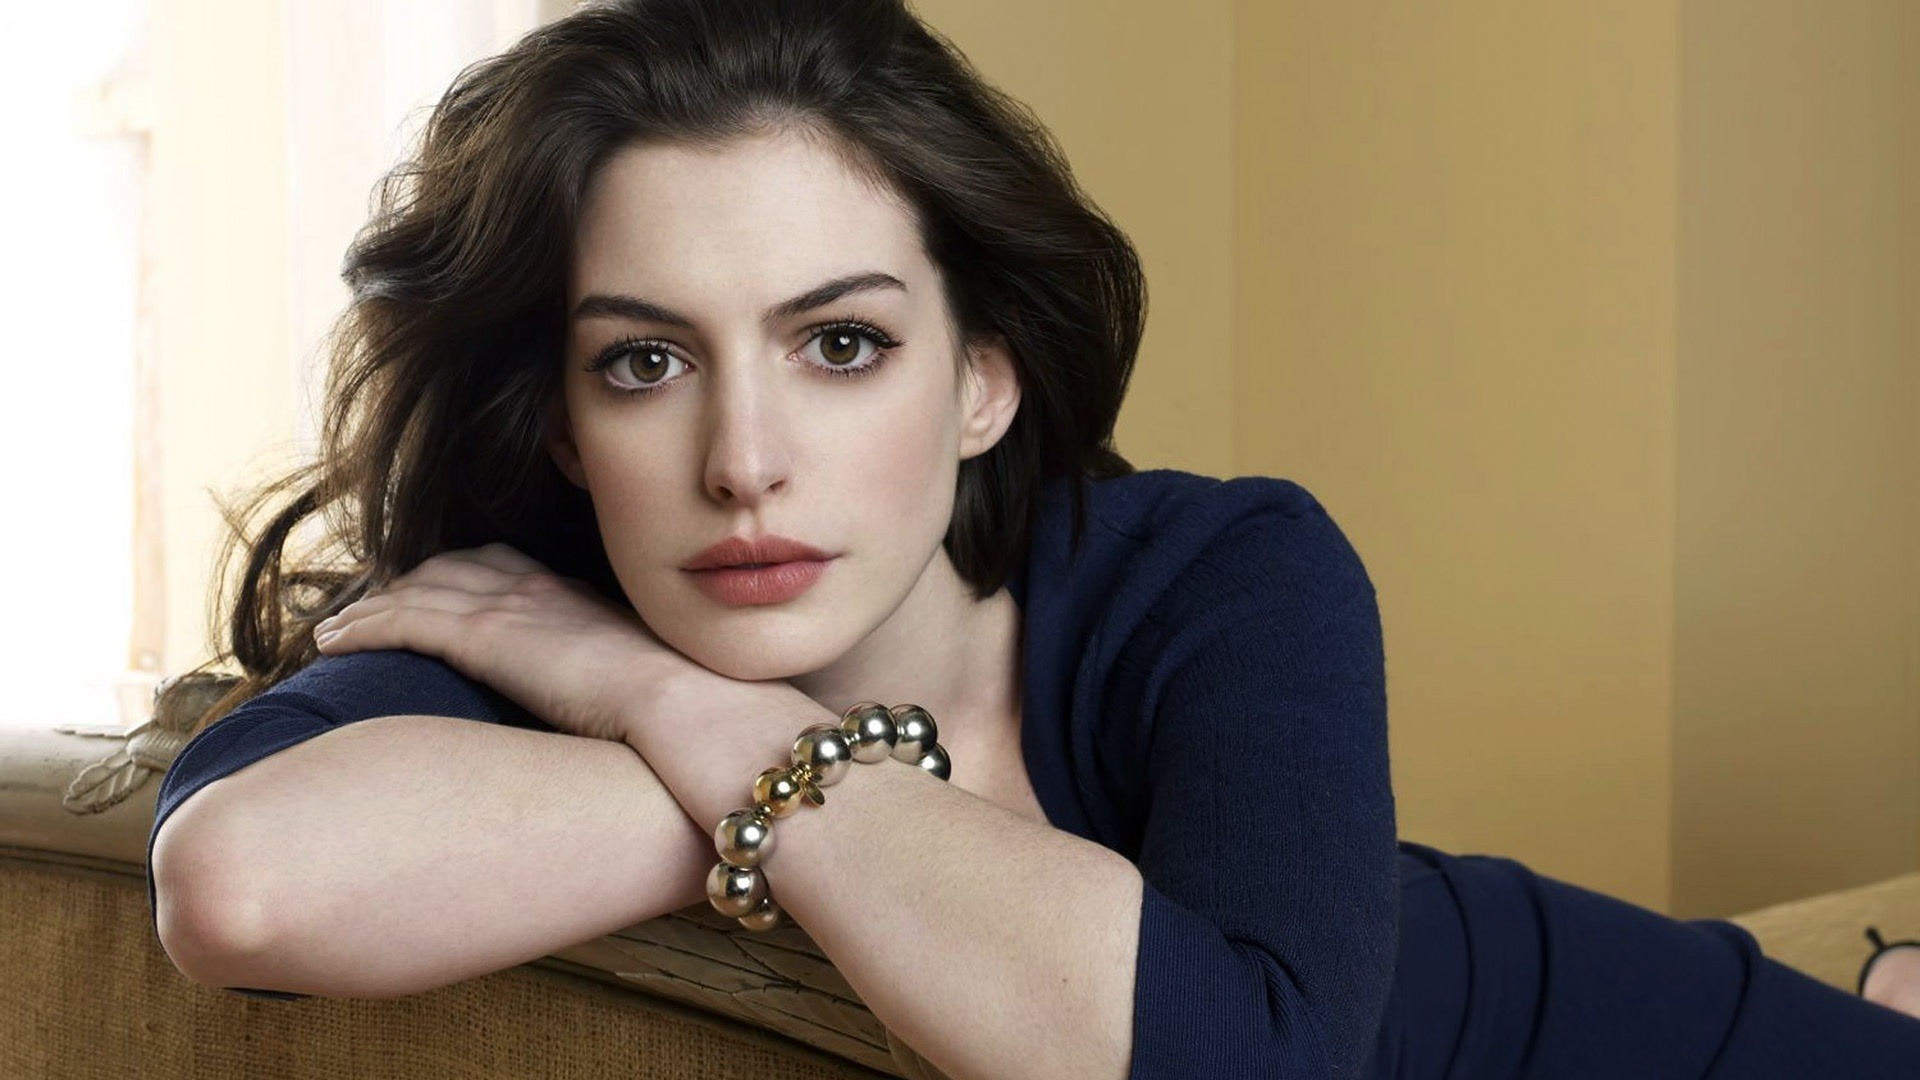 1920x1080 - Anne Hathaway Wallpapers 32